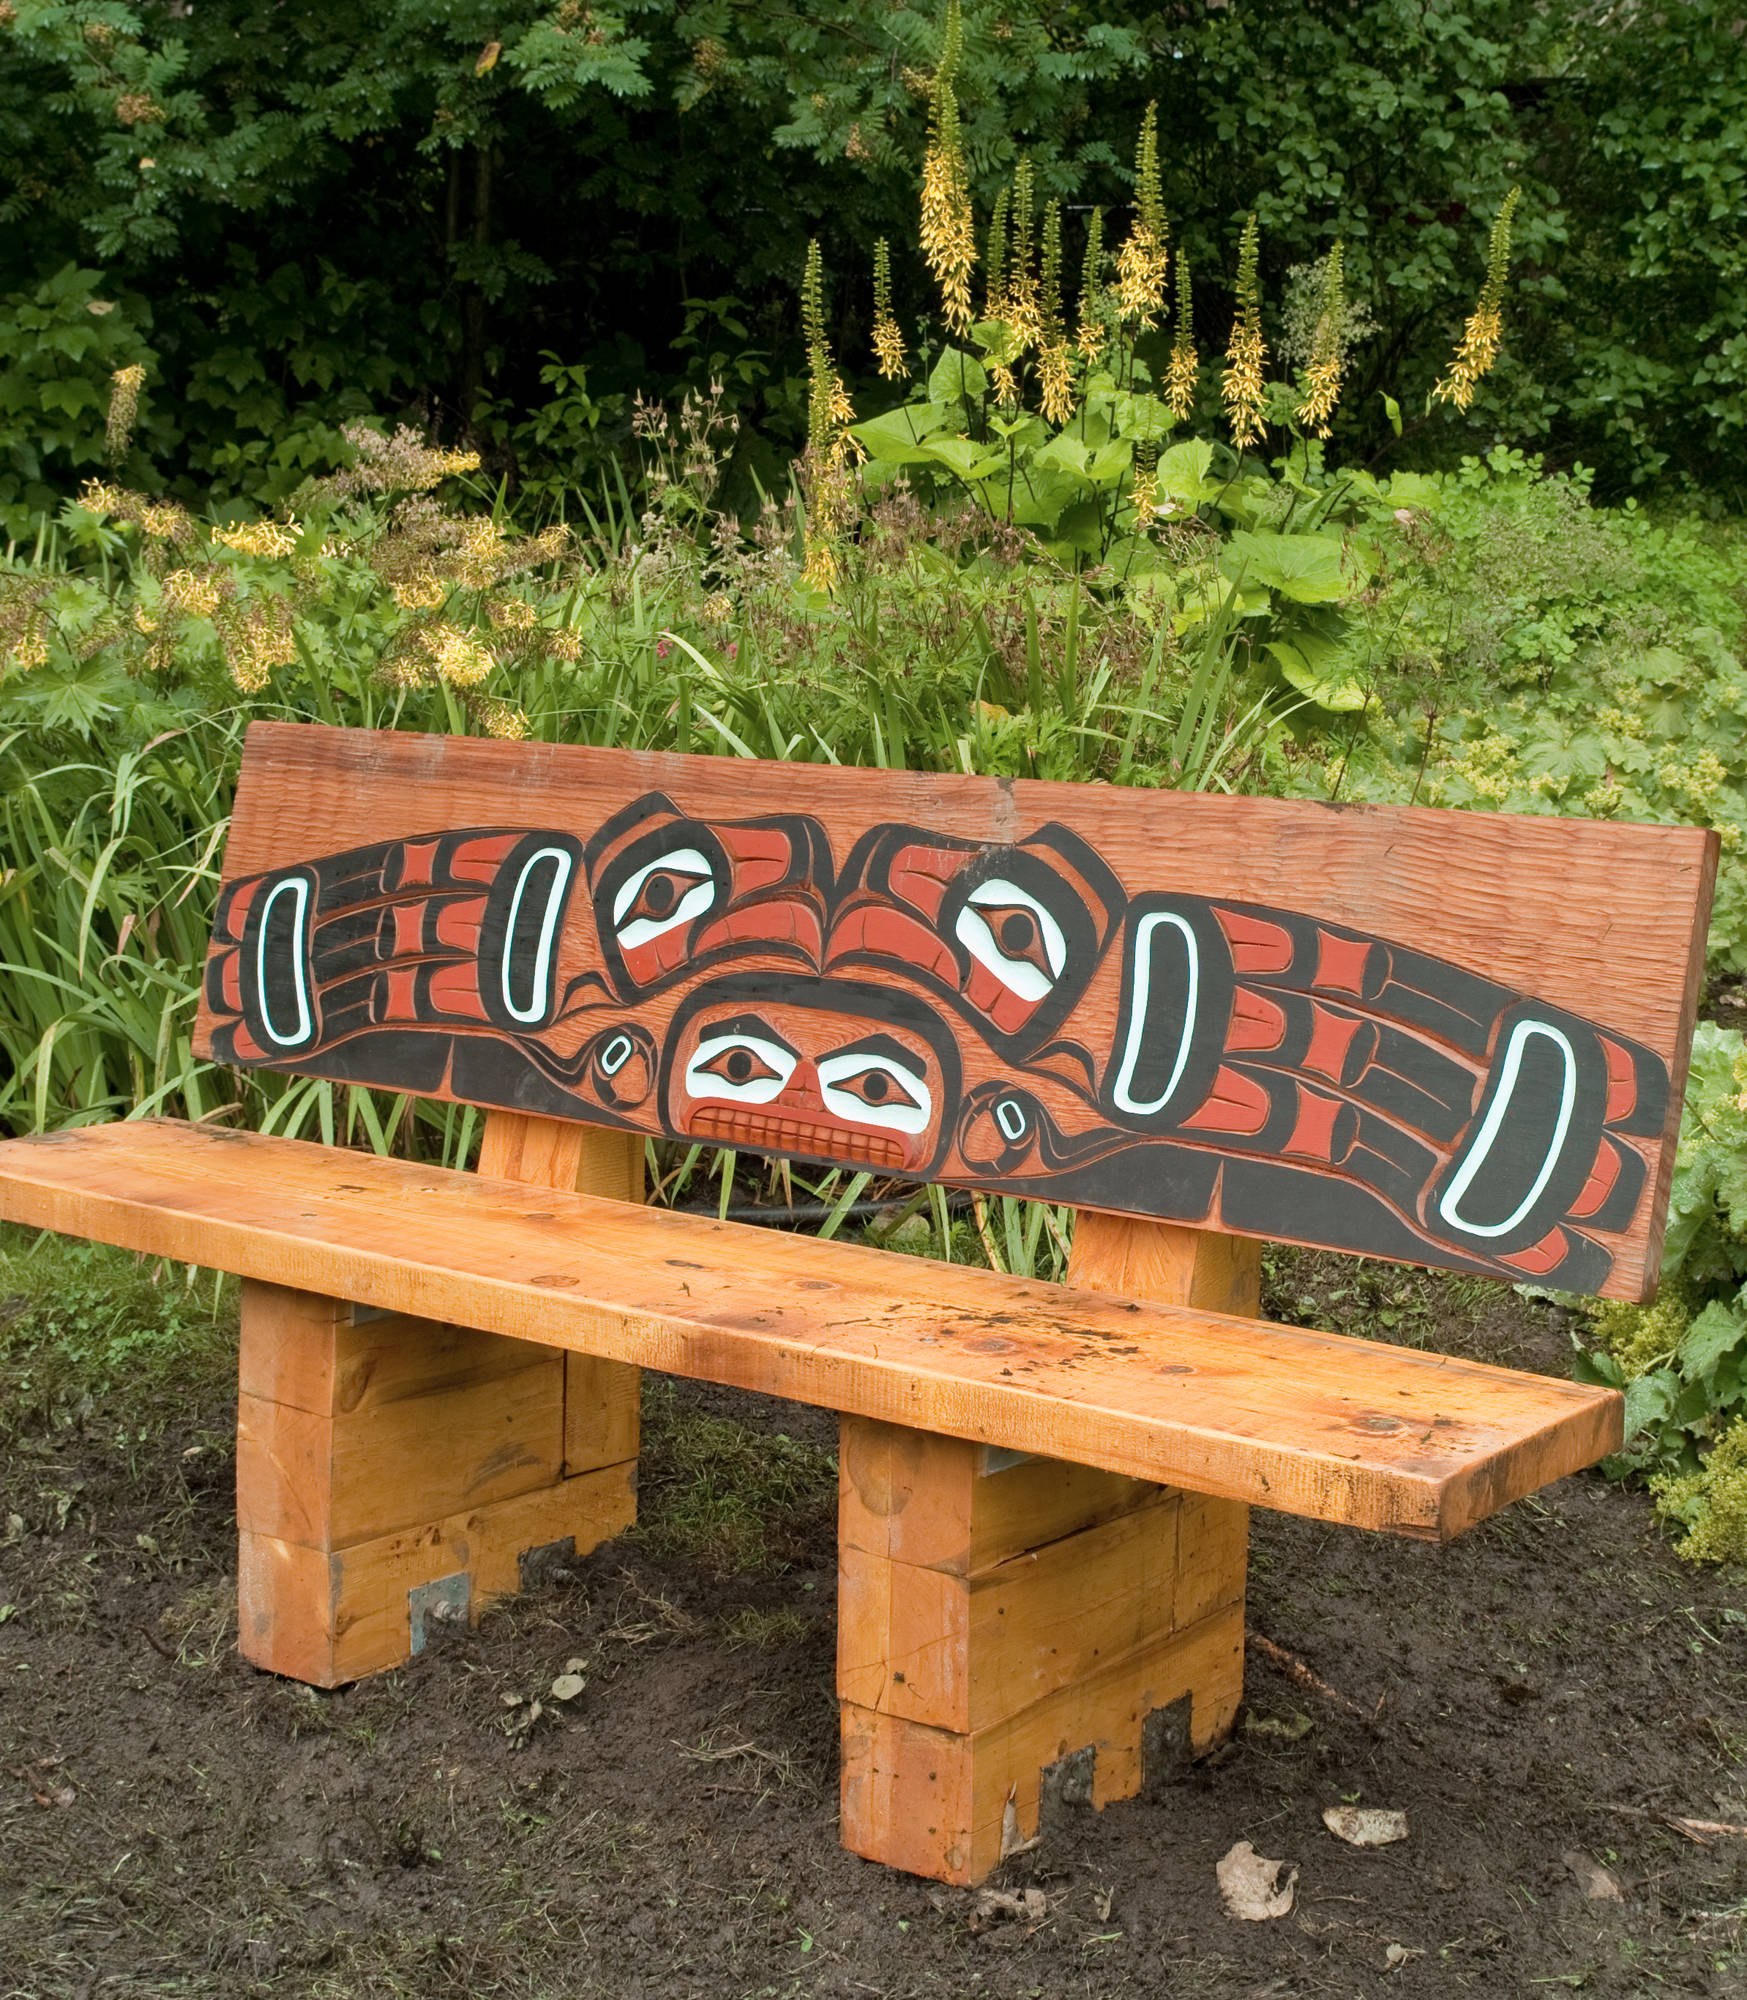 A newly painted cedar bench was recently installed at the Juneau-Douglas City Museum. (Michael Penn | Juneau Empire)